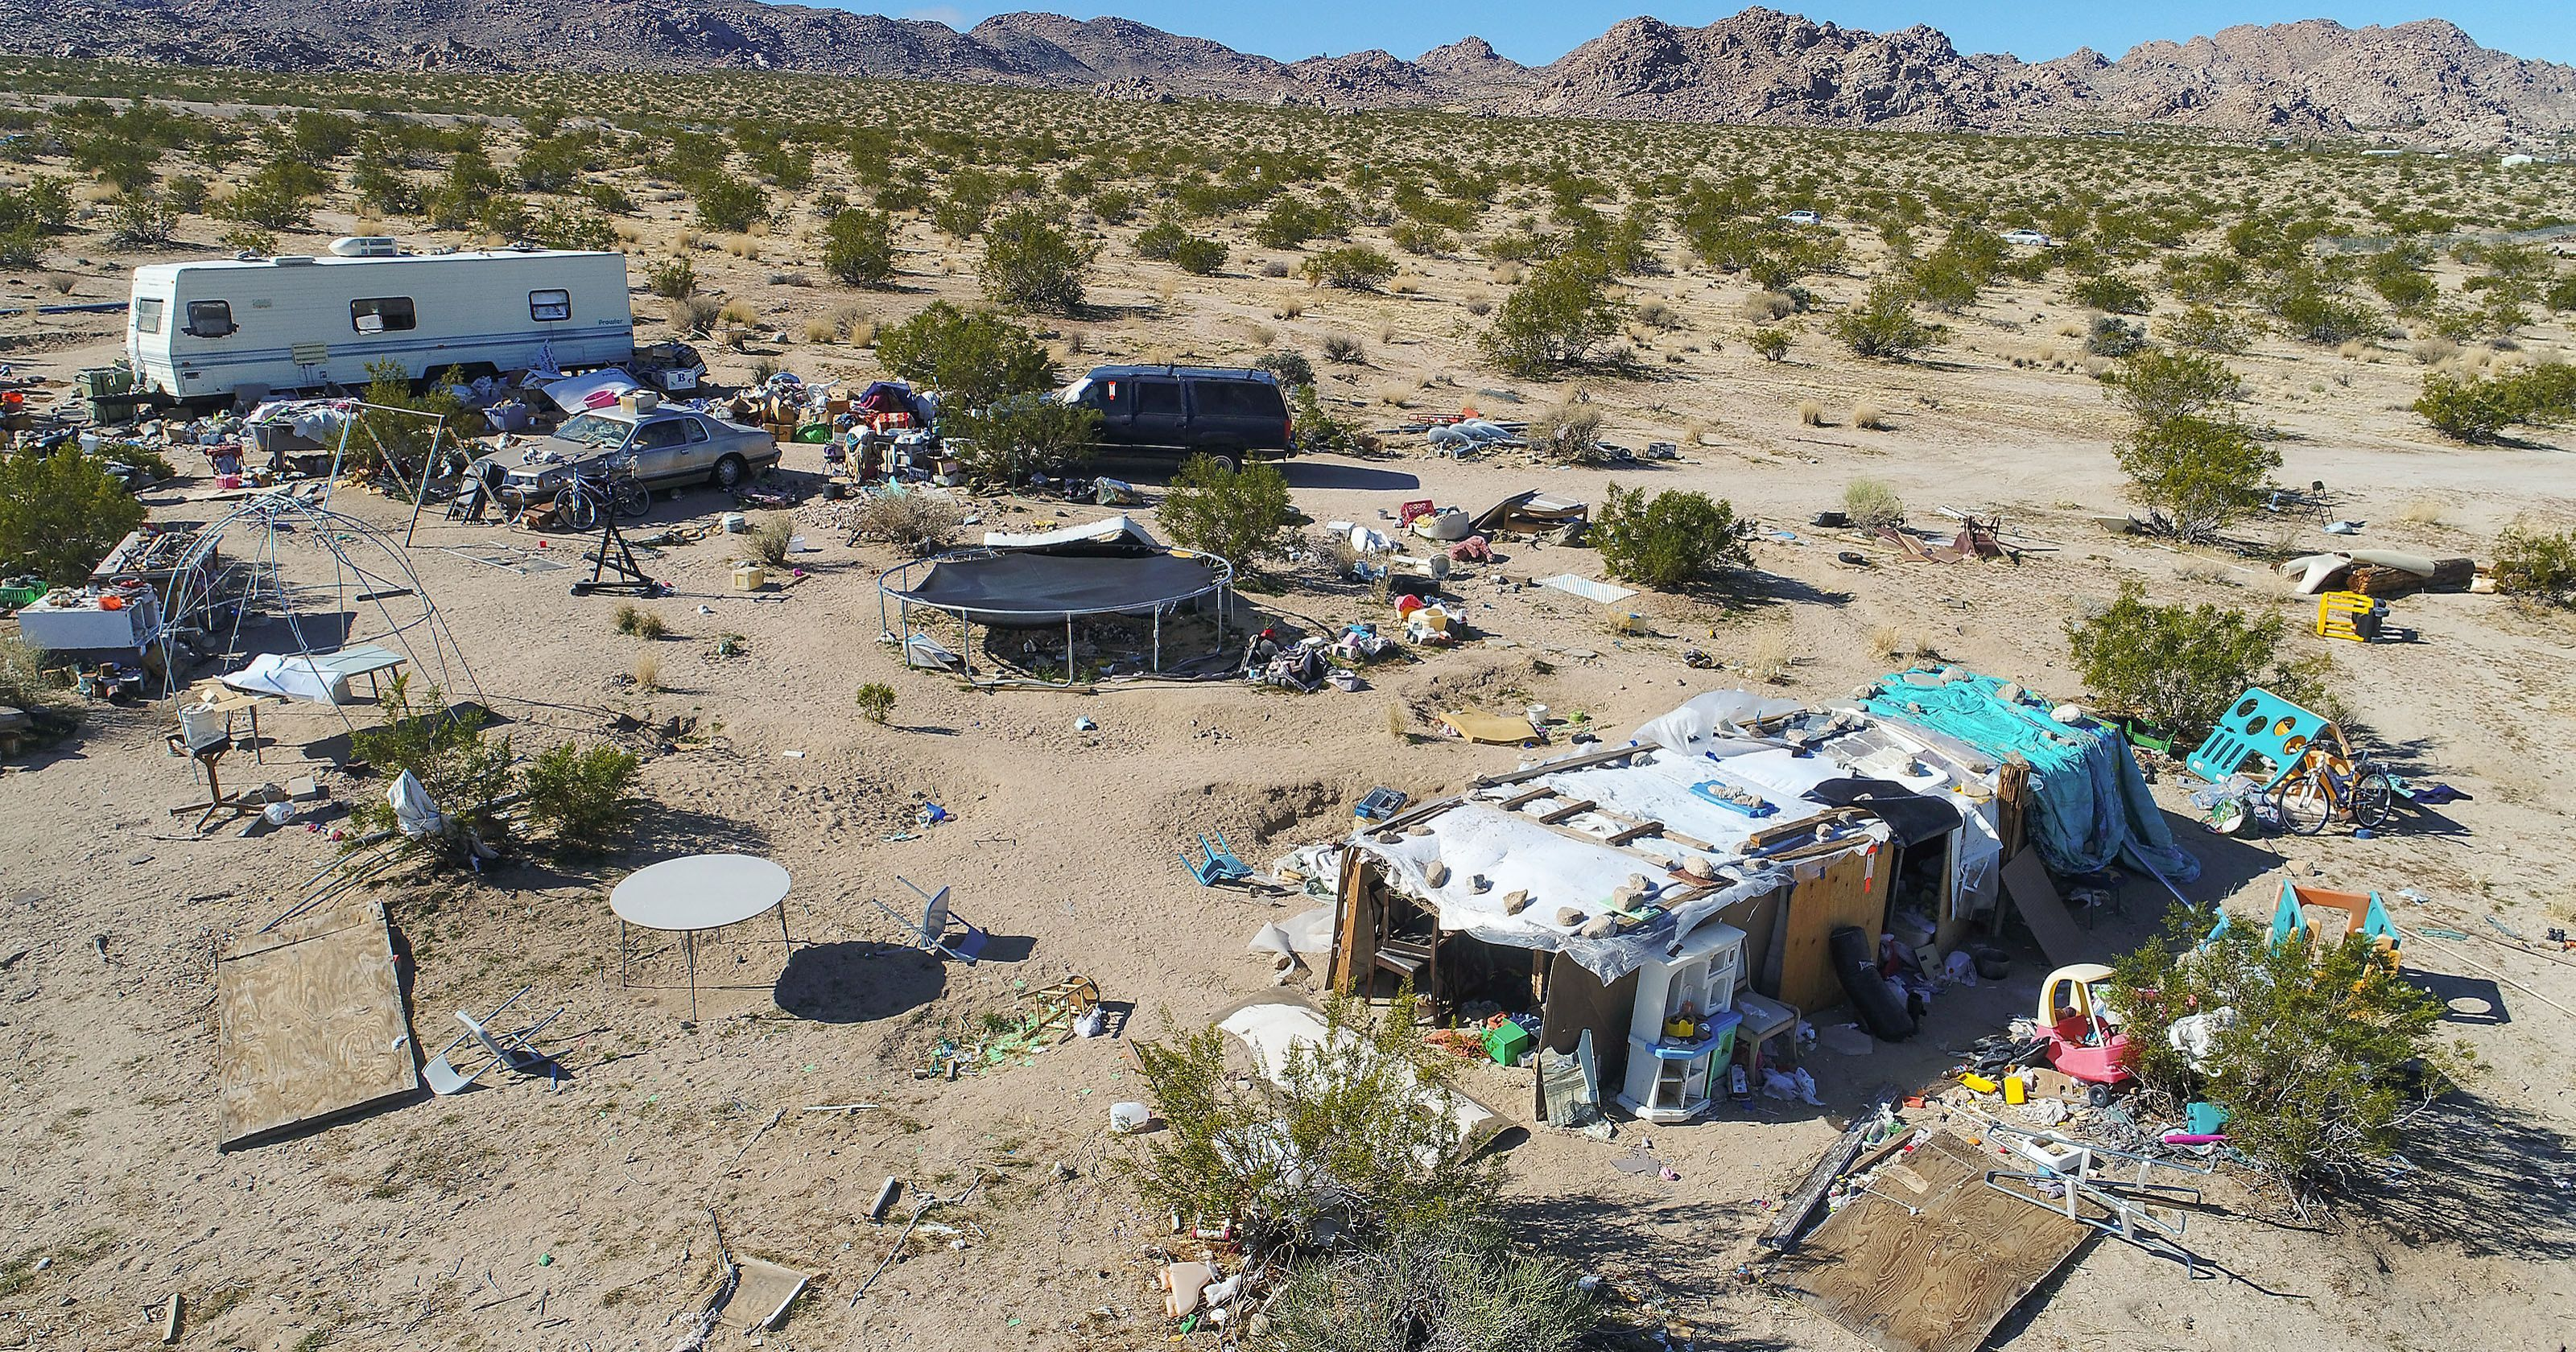 Joshua Tree shack surrounded by feces, stray cats and junk